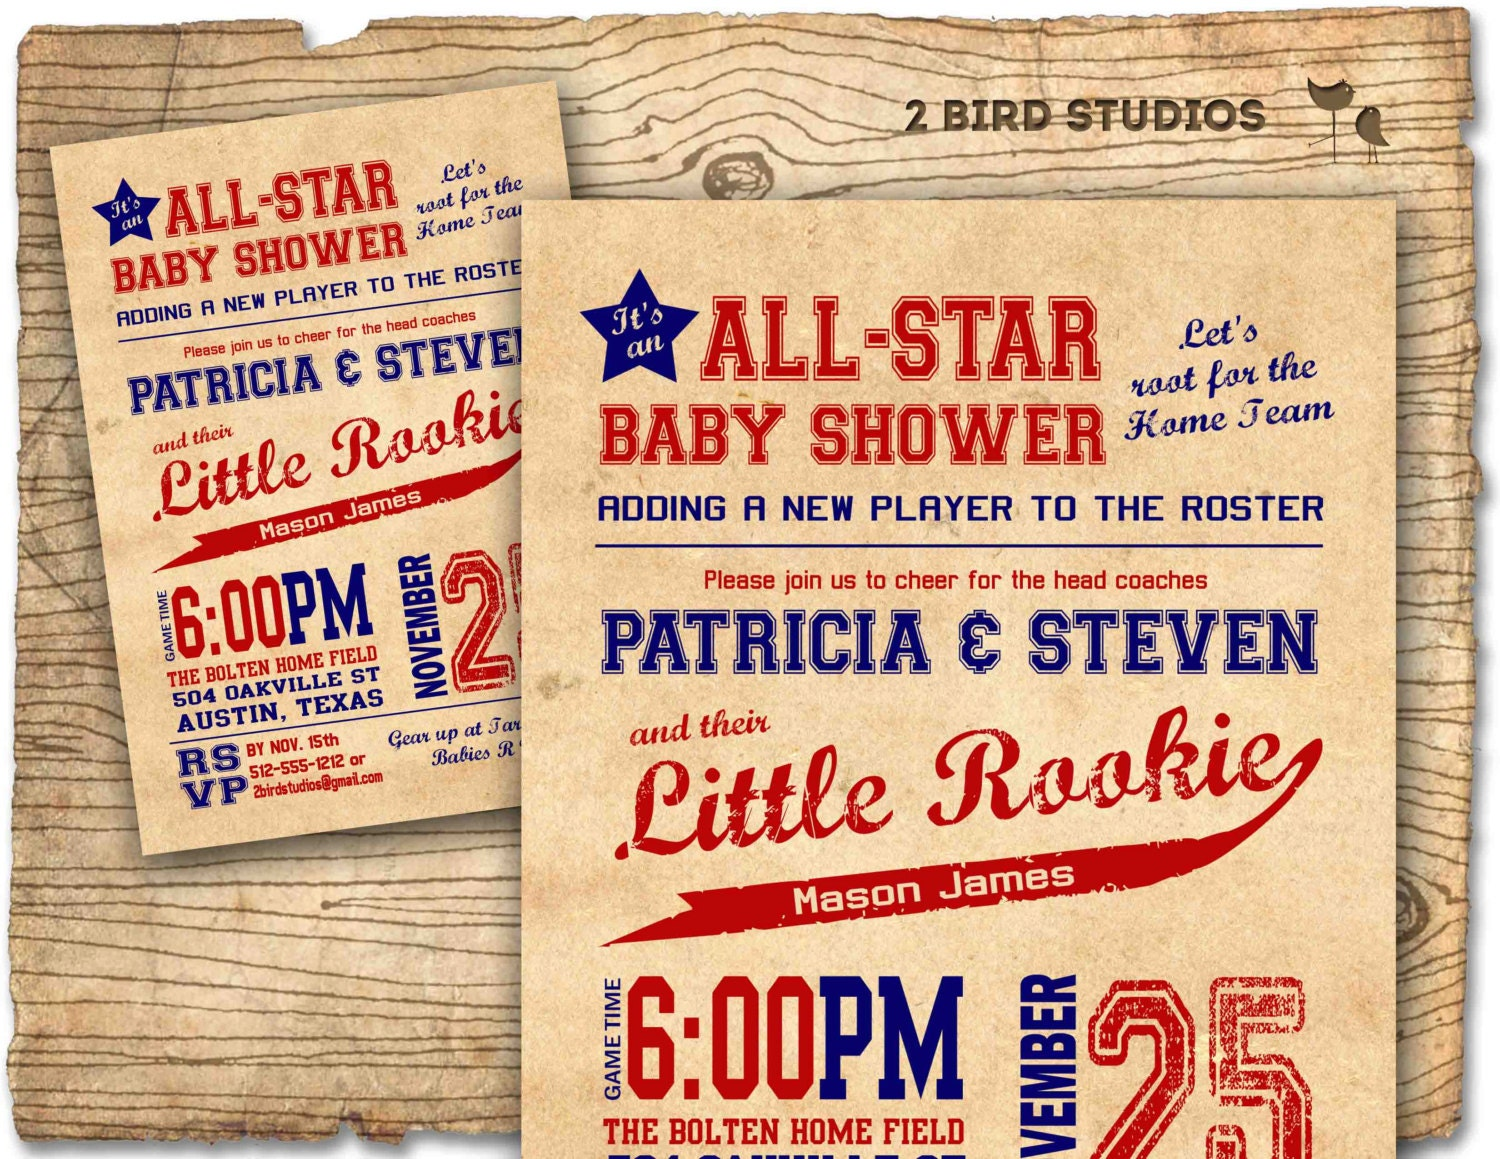 photograph relating to Free Printable Baseball Baby Shower Invitations called Baseball kid shower invitation - baseball boy youngster shower invite- Do it yourself baseball partners shower athletics printable decorations